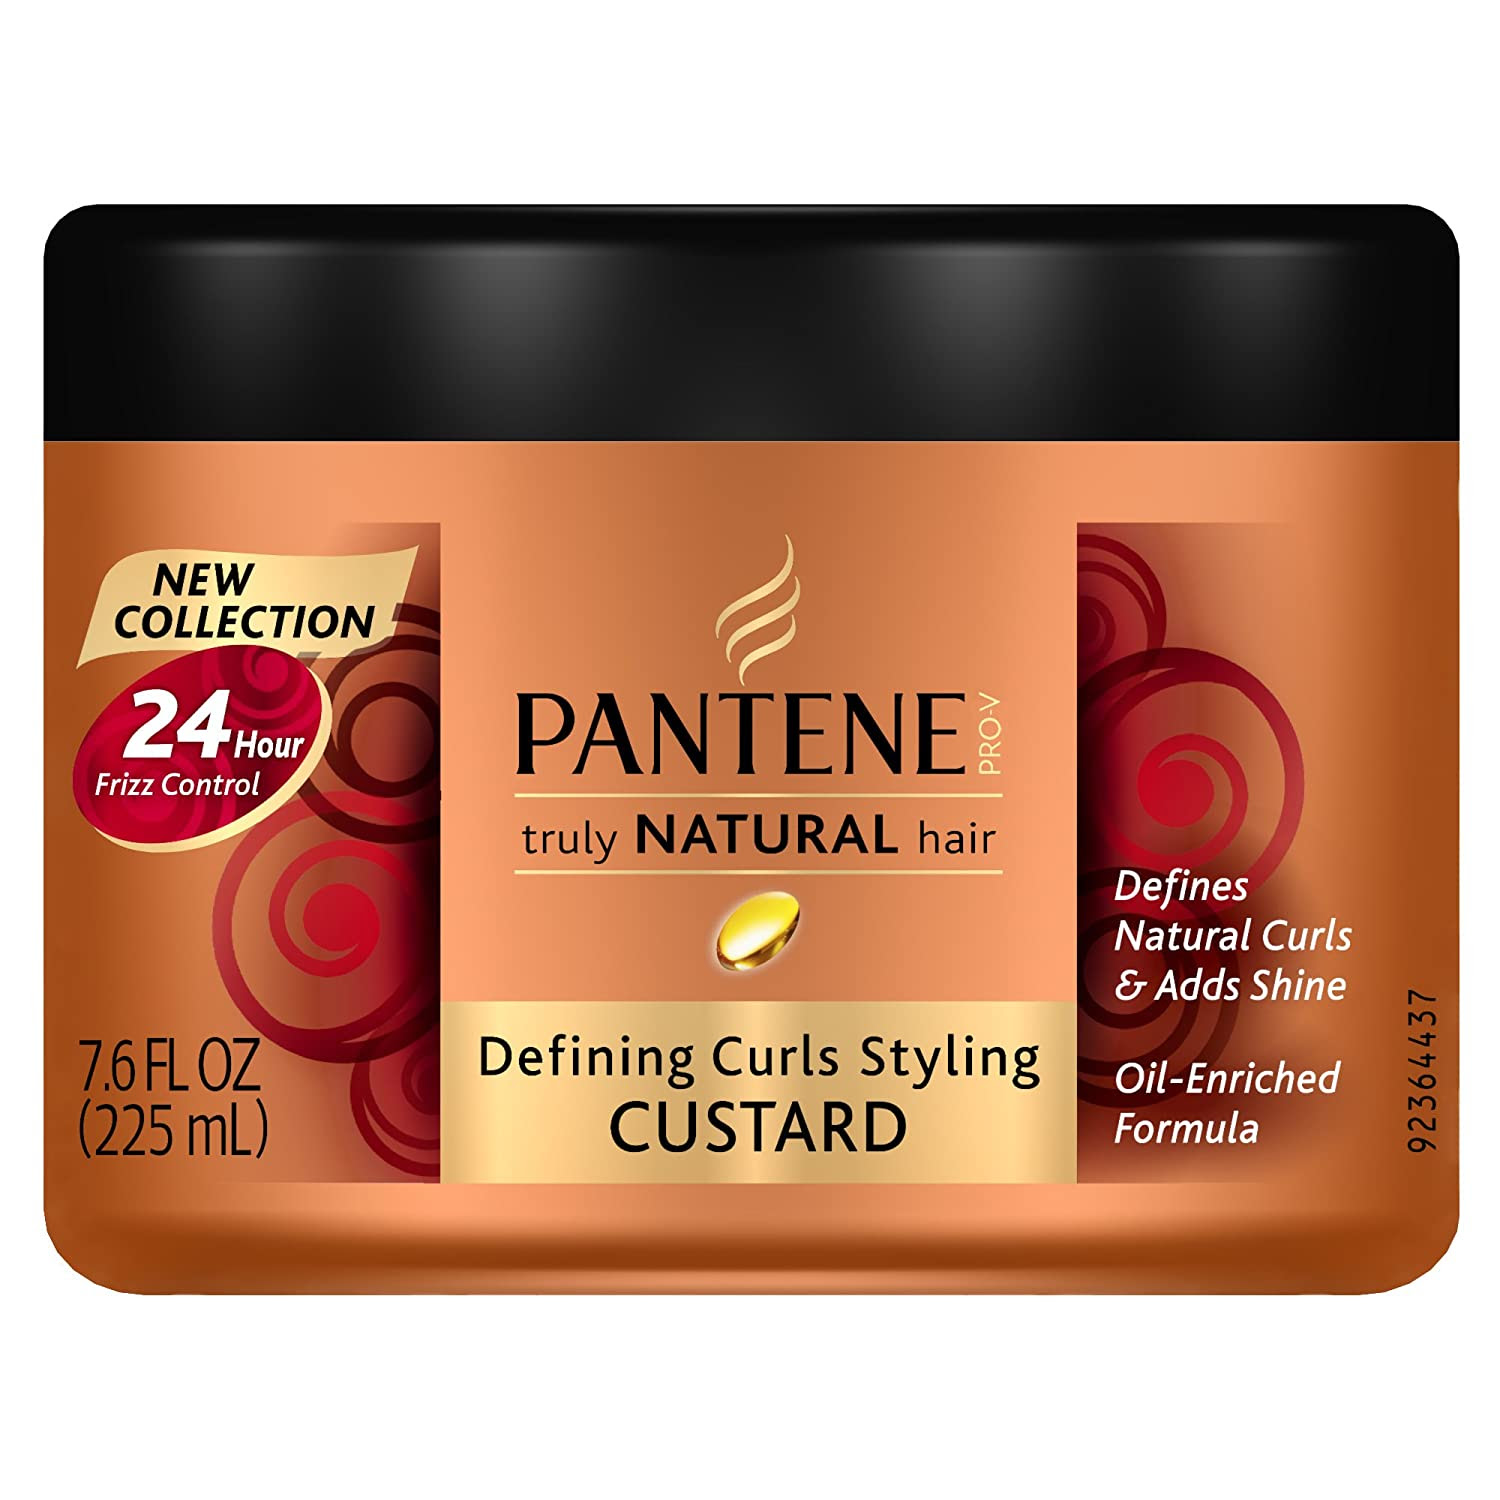 Natural Hair Defining Curls Styling Custard